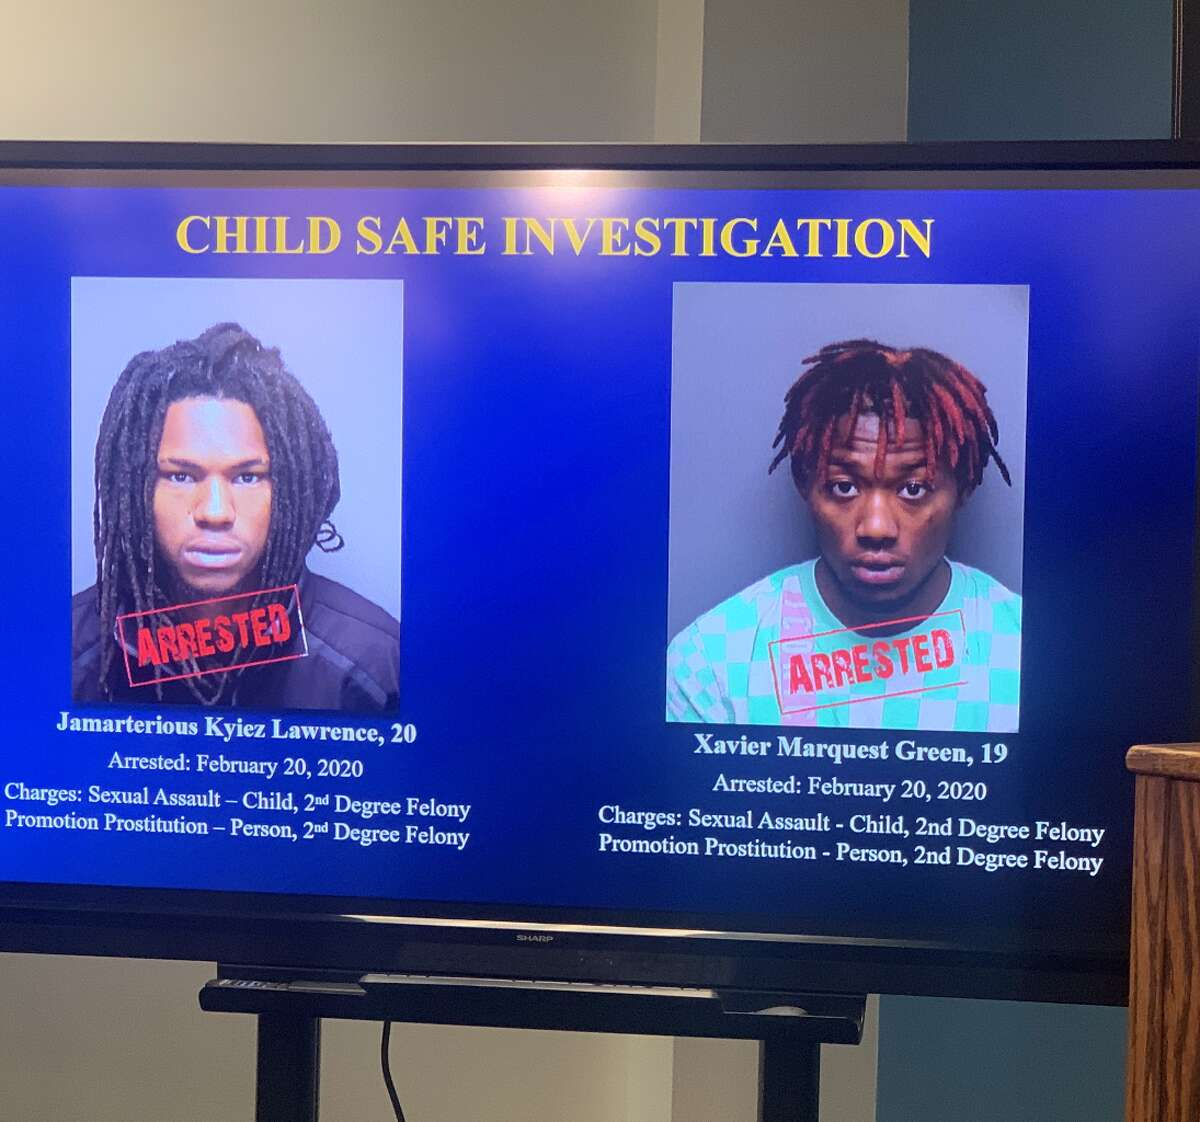 Jamarterious Kyiez Lawrence, 20, and Xavier Marquest Green, 19, were both arrested and charged with sexual assault with a child and promotion of prostitution on Thursday.